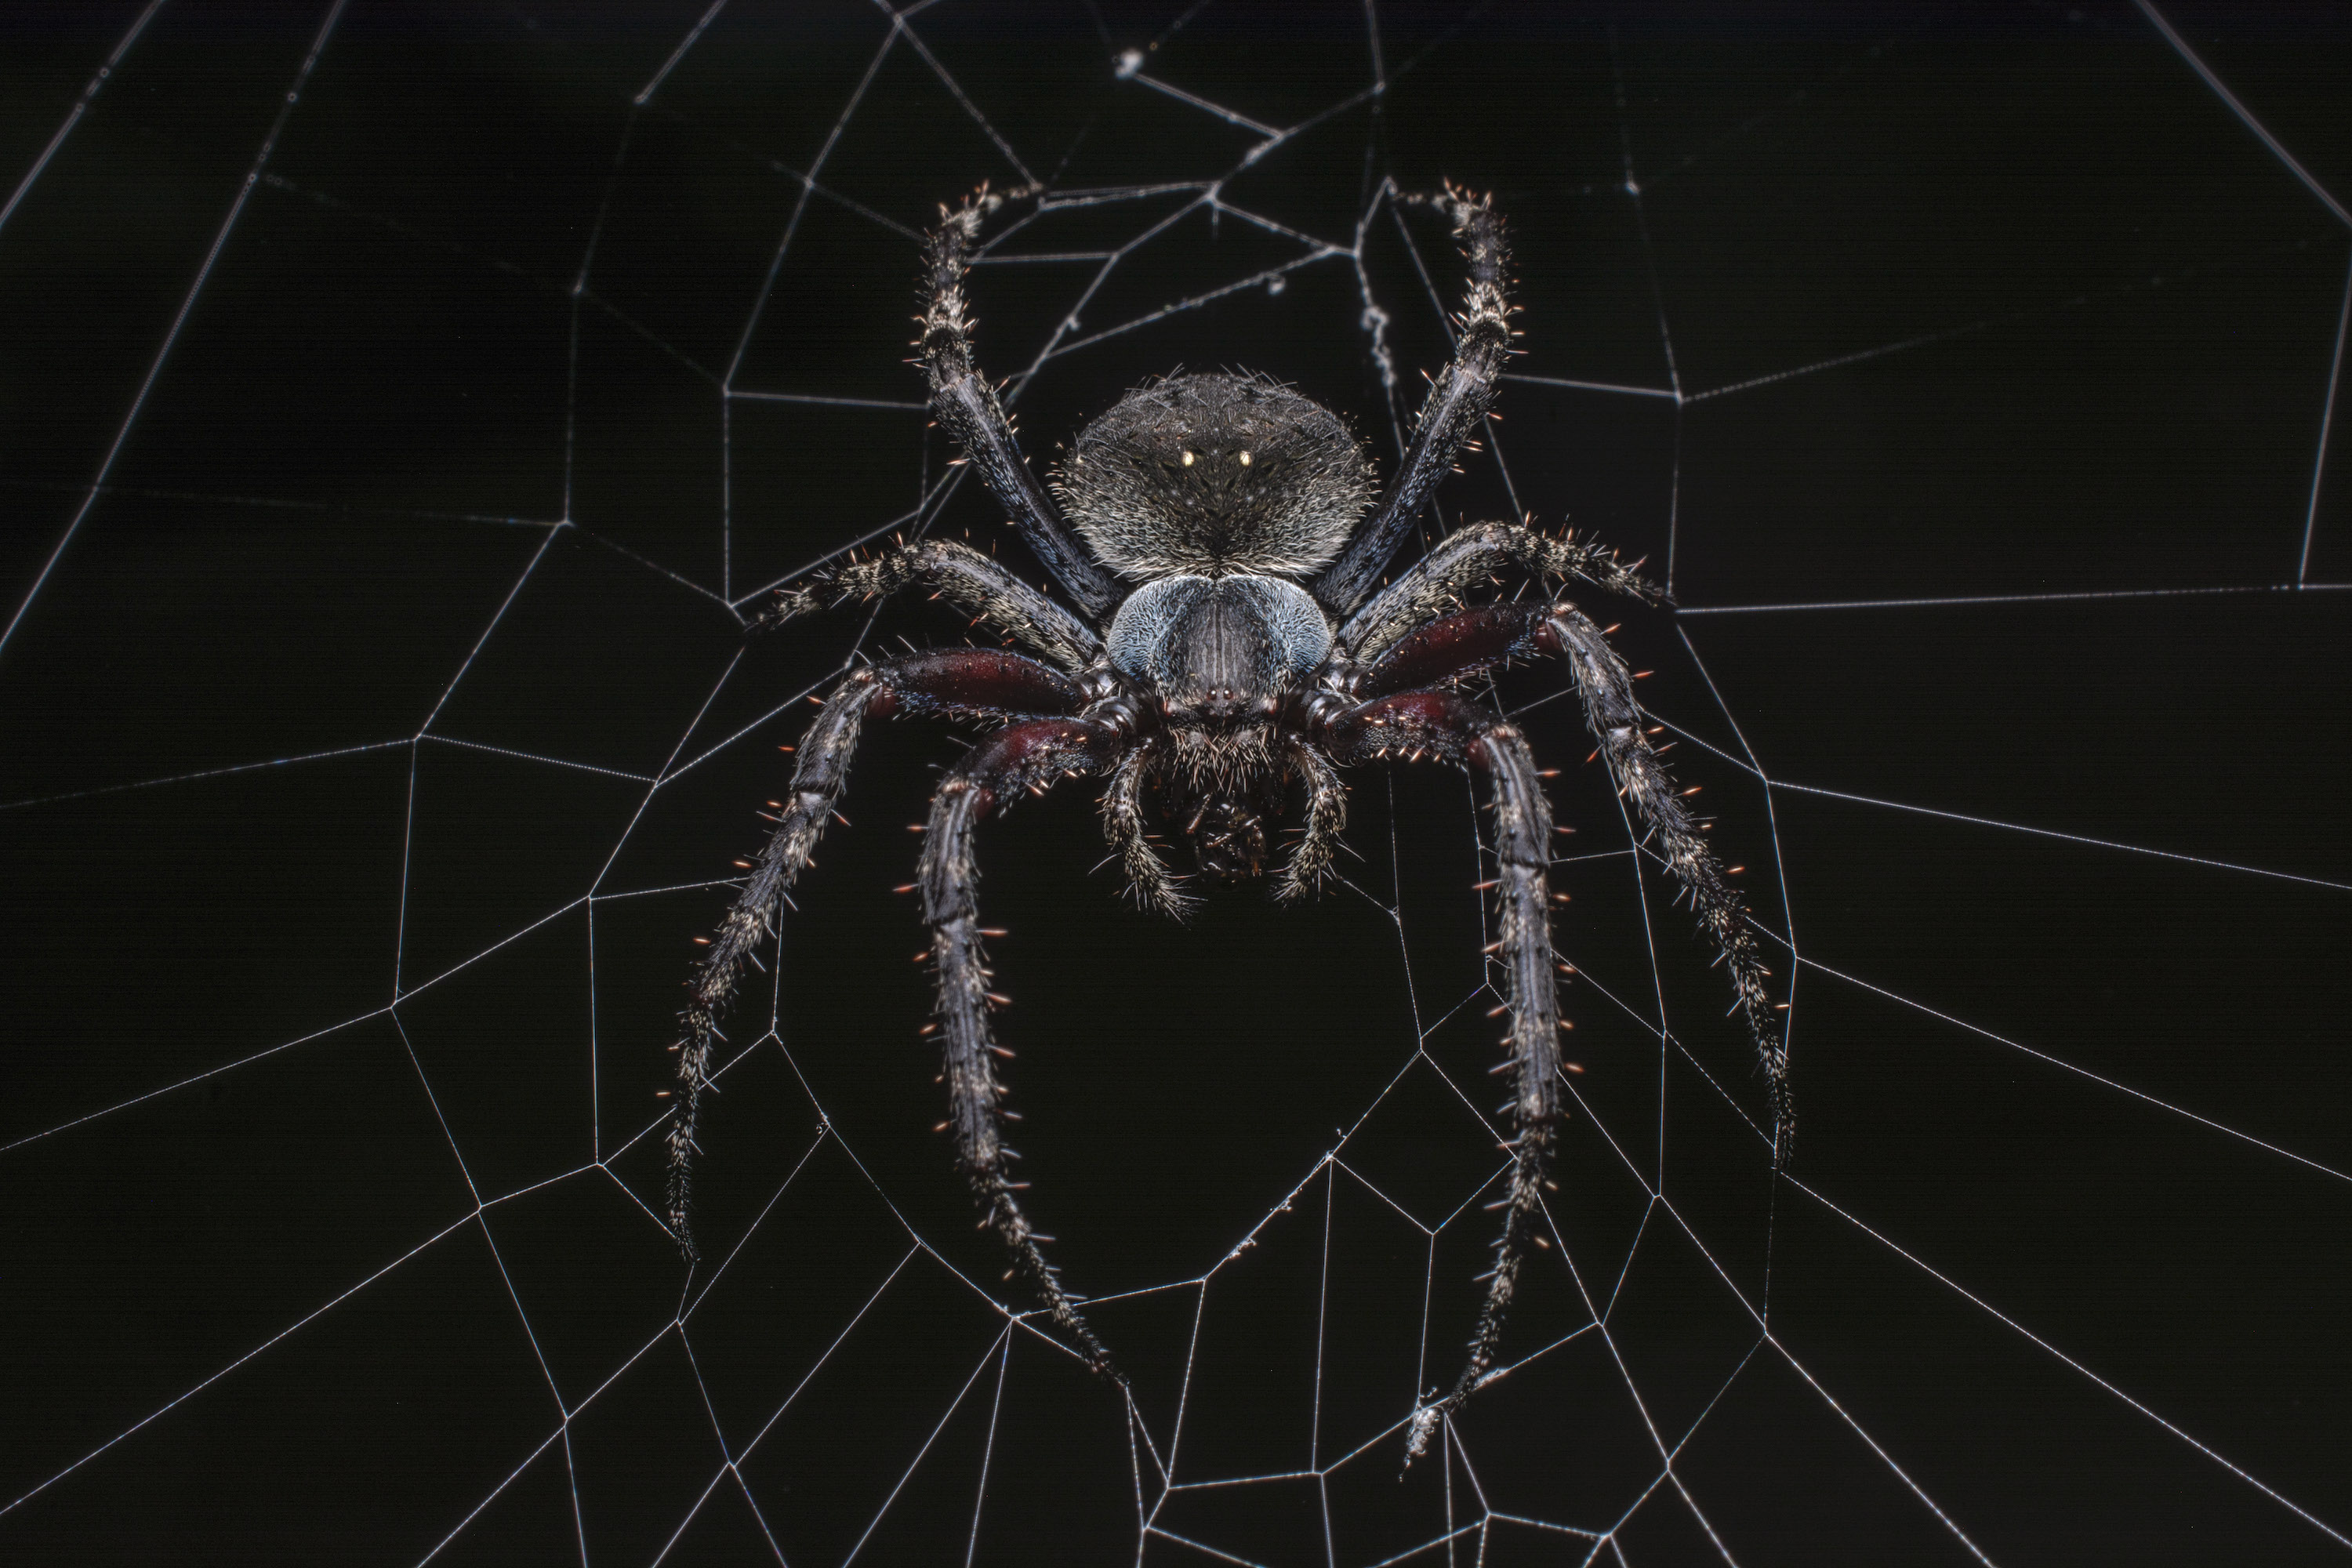 An orb-weaver spider feeds on a midnight snack. Orb-weavers can be found everywhere from dense forests to home gardens. Photo: Samuel John